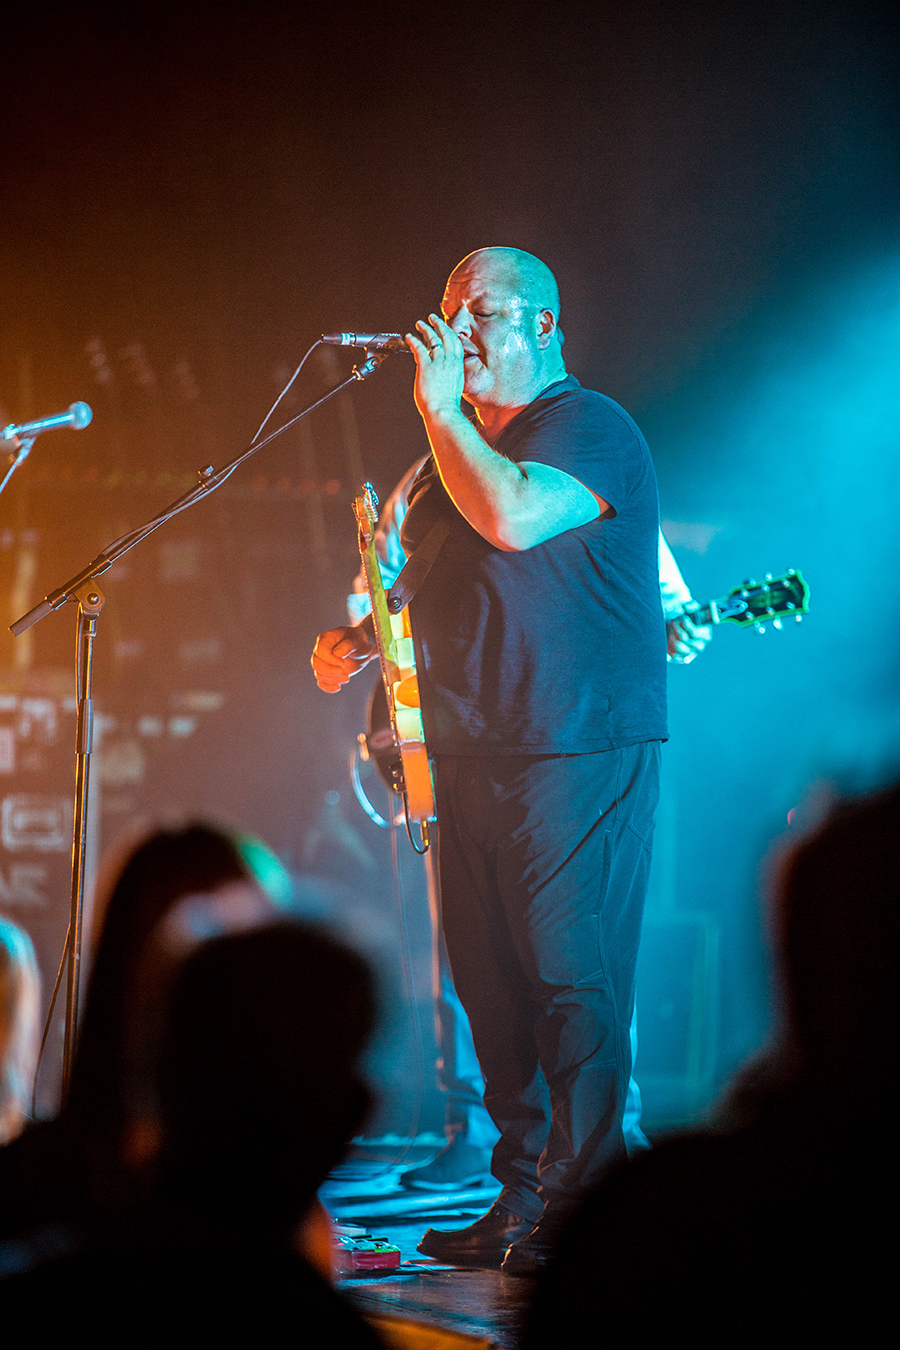 4I0A4060 The Pixies sell out the Chicago Theatre and Wow fans with a stellar show